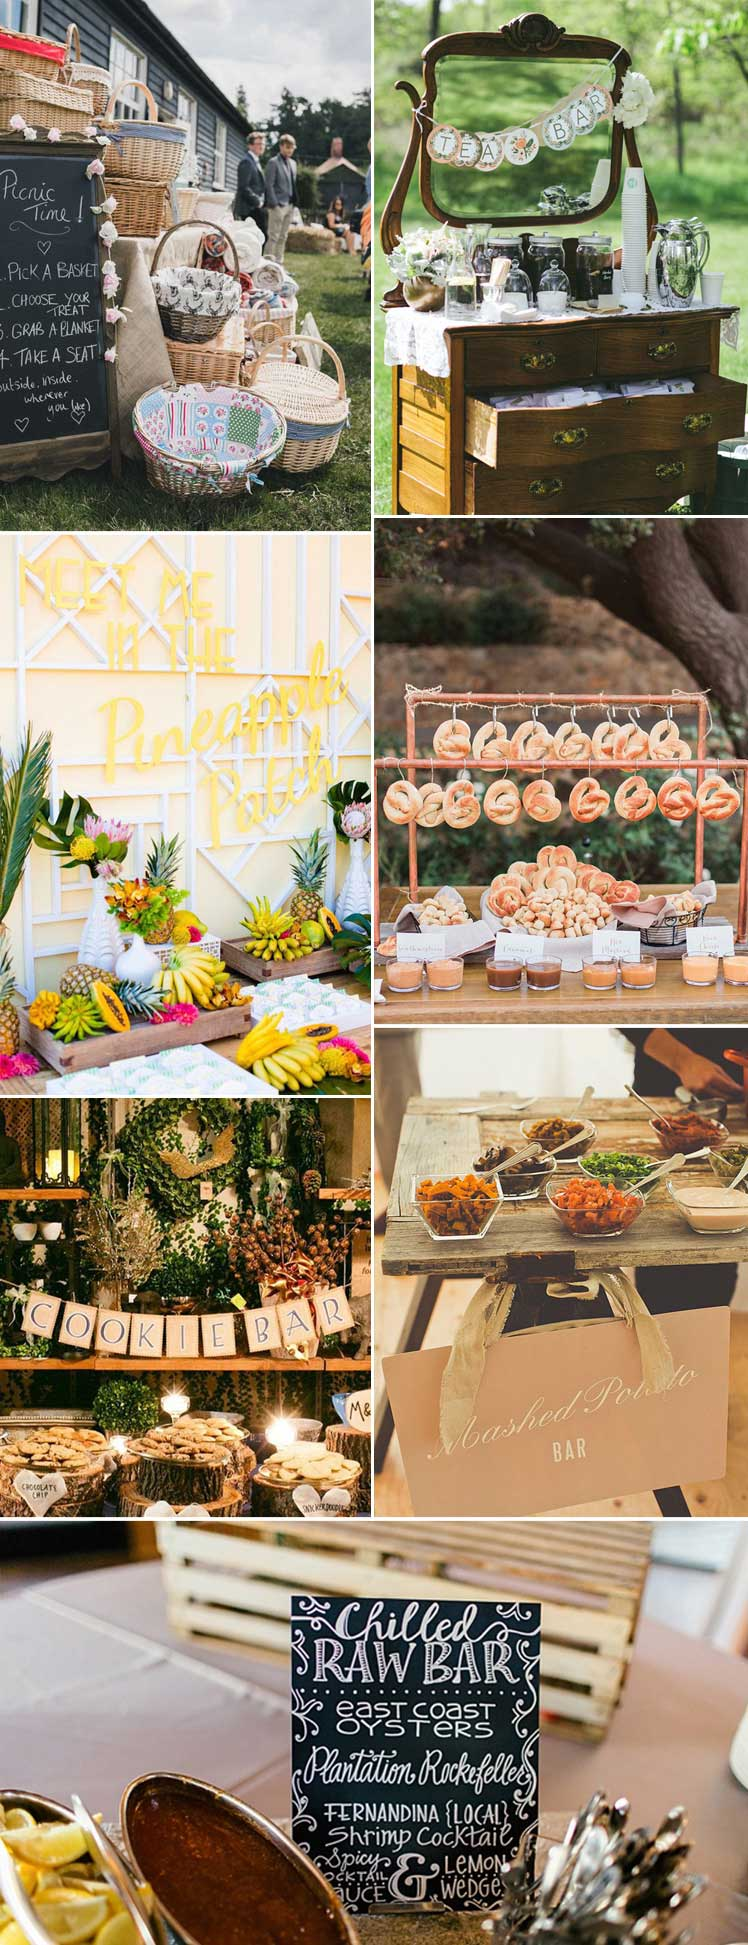 Wedding food station inspiration